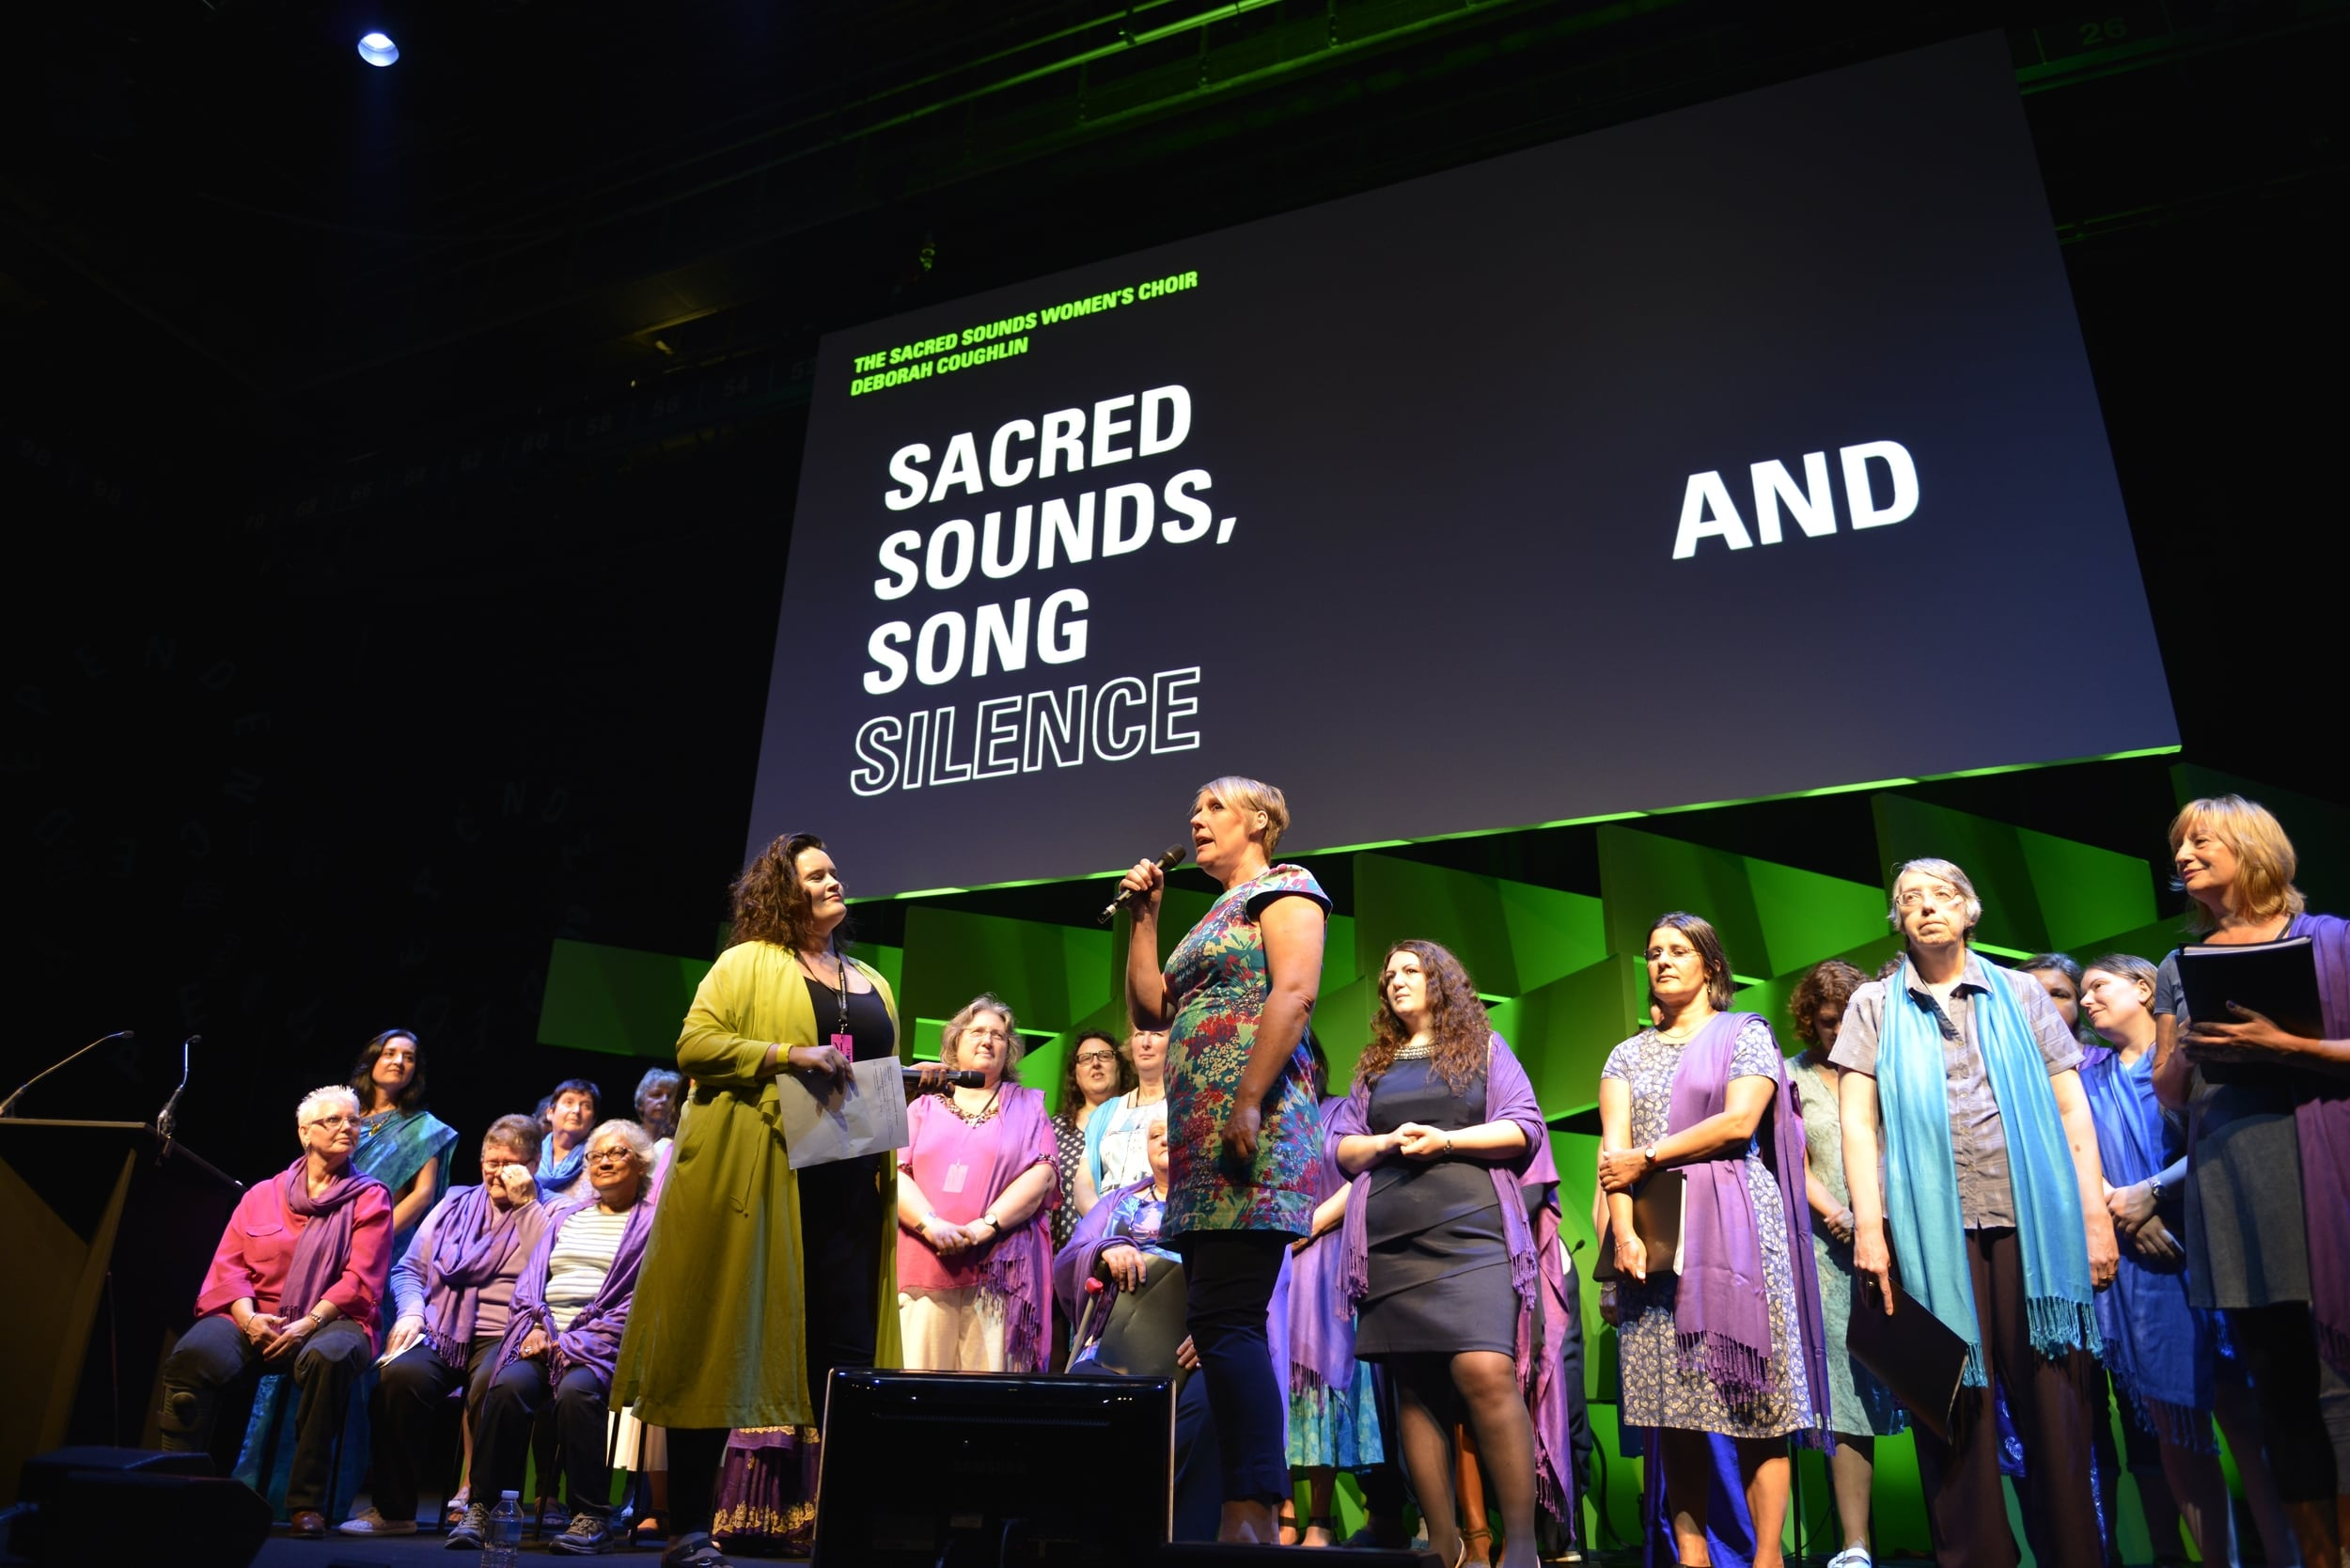 Sacred Sounds Women's Choir's performance and interview as part of Interdependence – Old Granada Studios / 04.07.15. Photo: Rob Martin for Manchester International Festival.